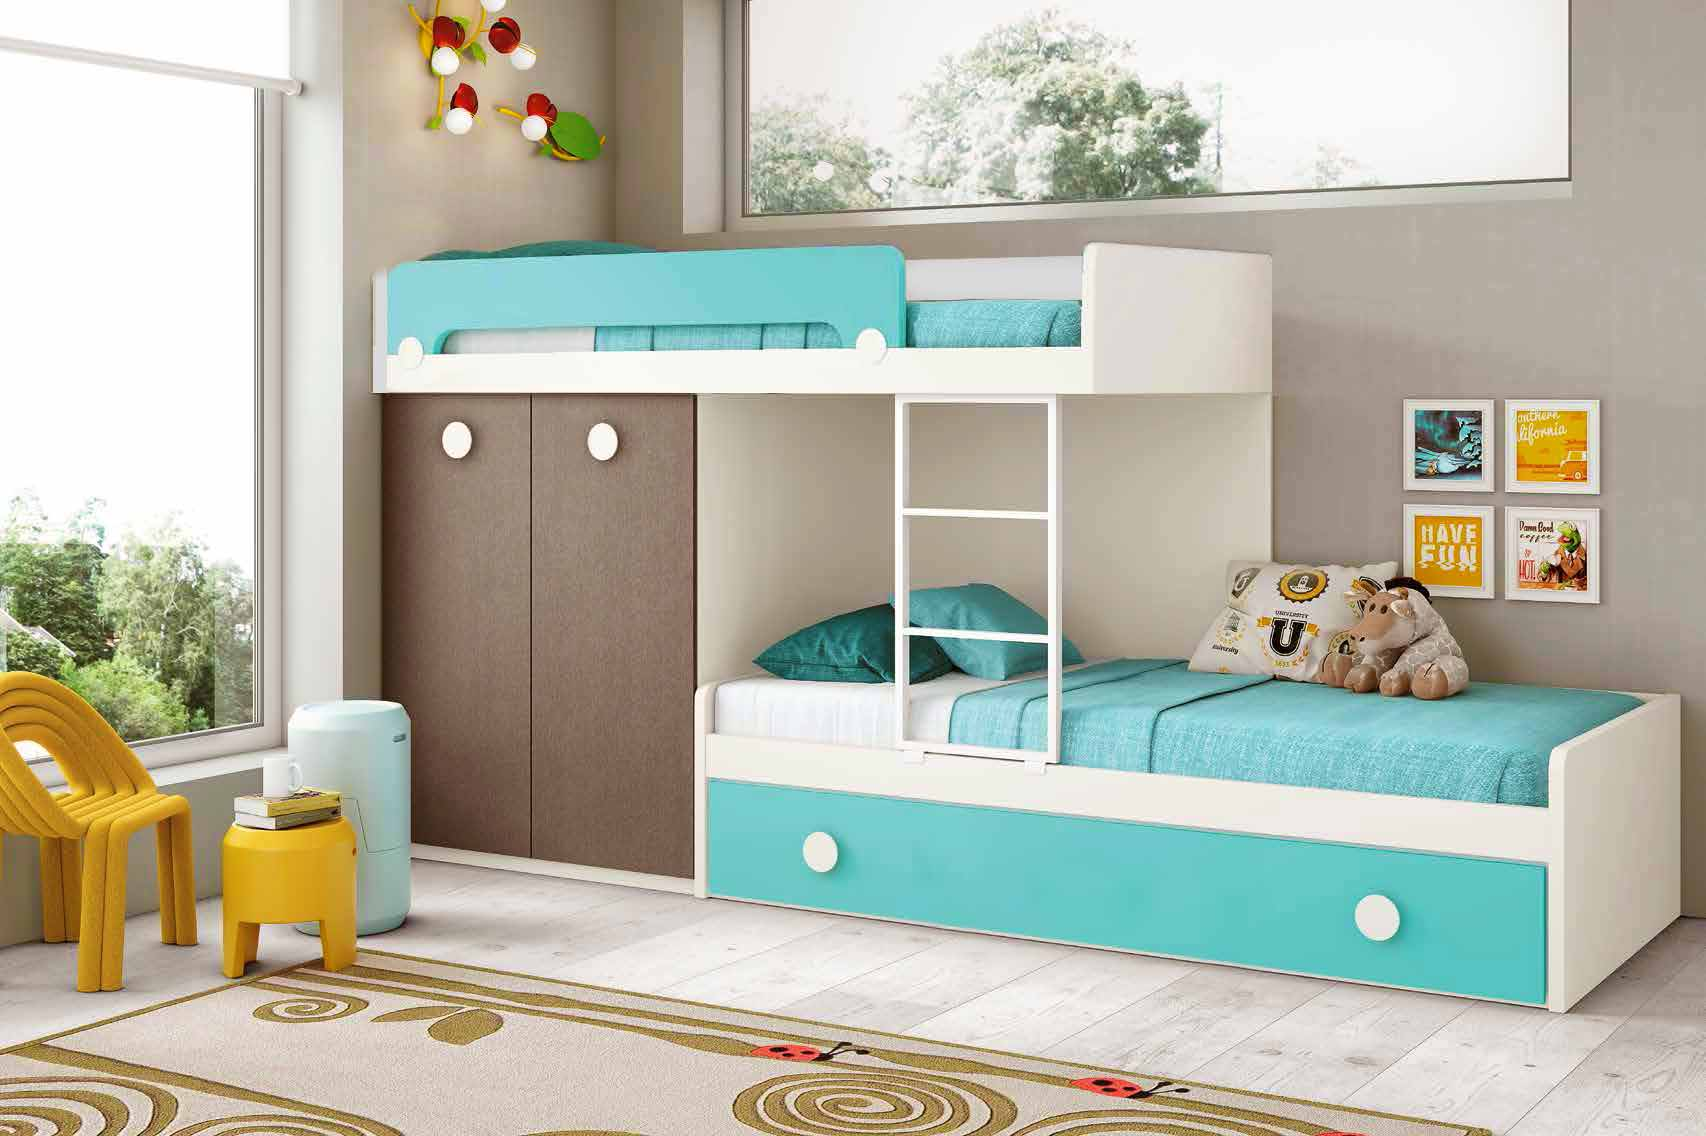 lit superpos enfant avec lit gigogne glicerio so nuit. Black Bedroom Furniture Sets. Home Design Ideas